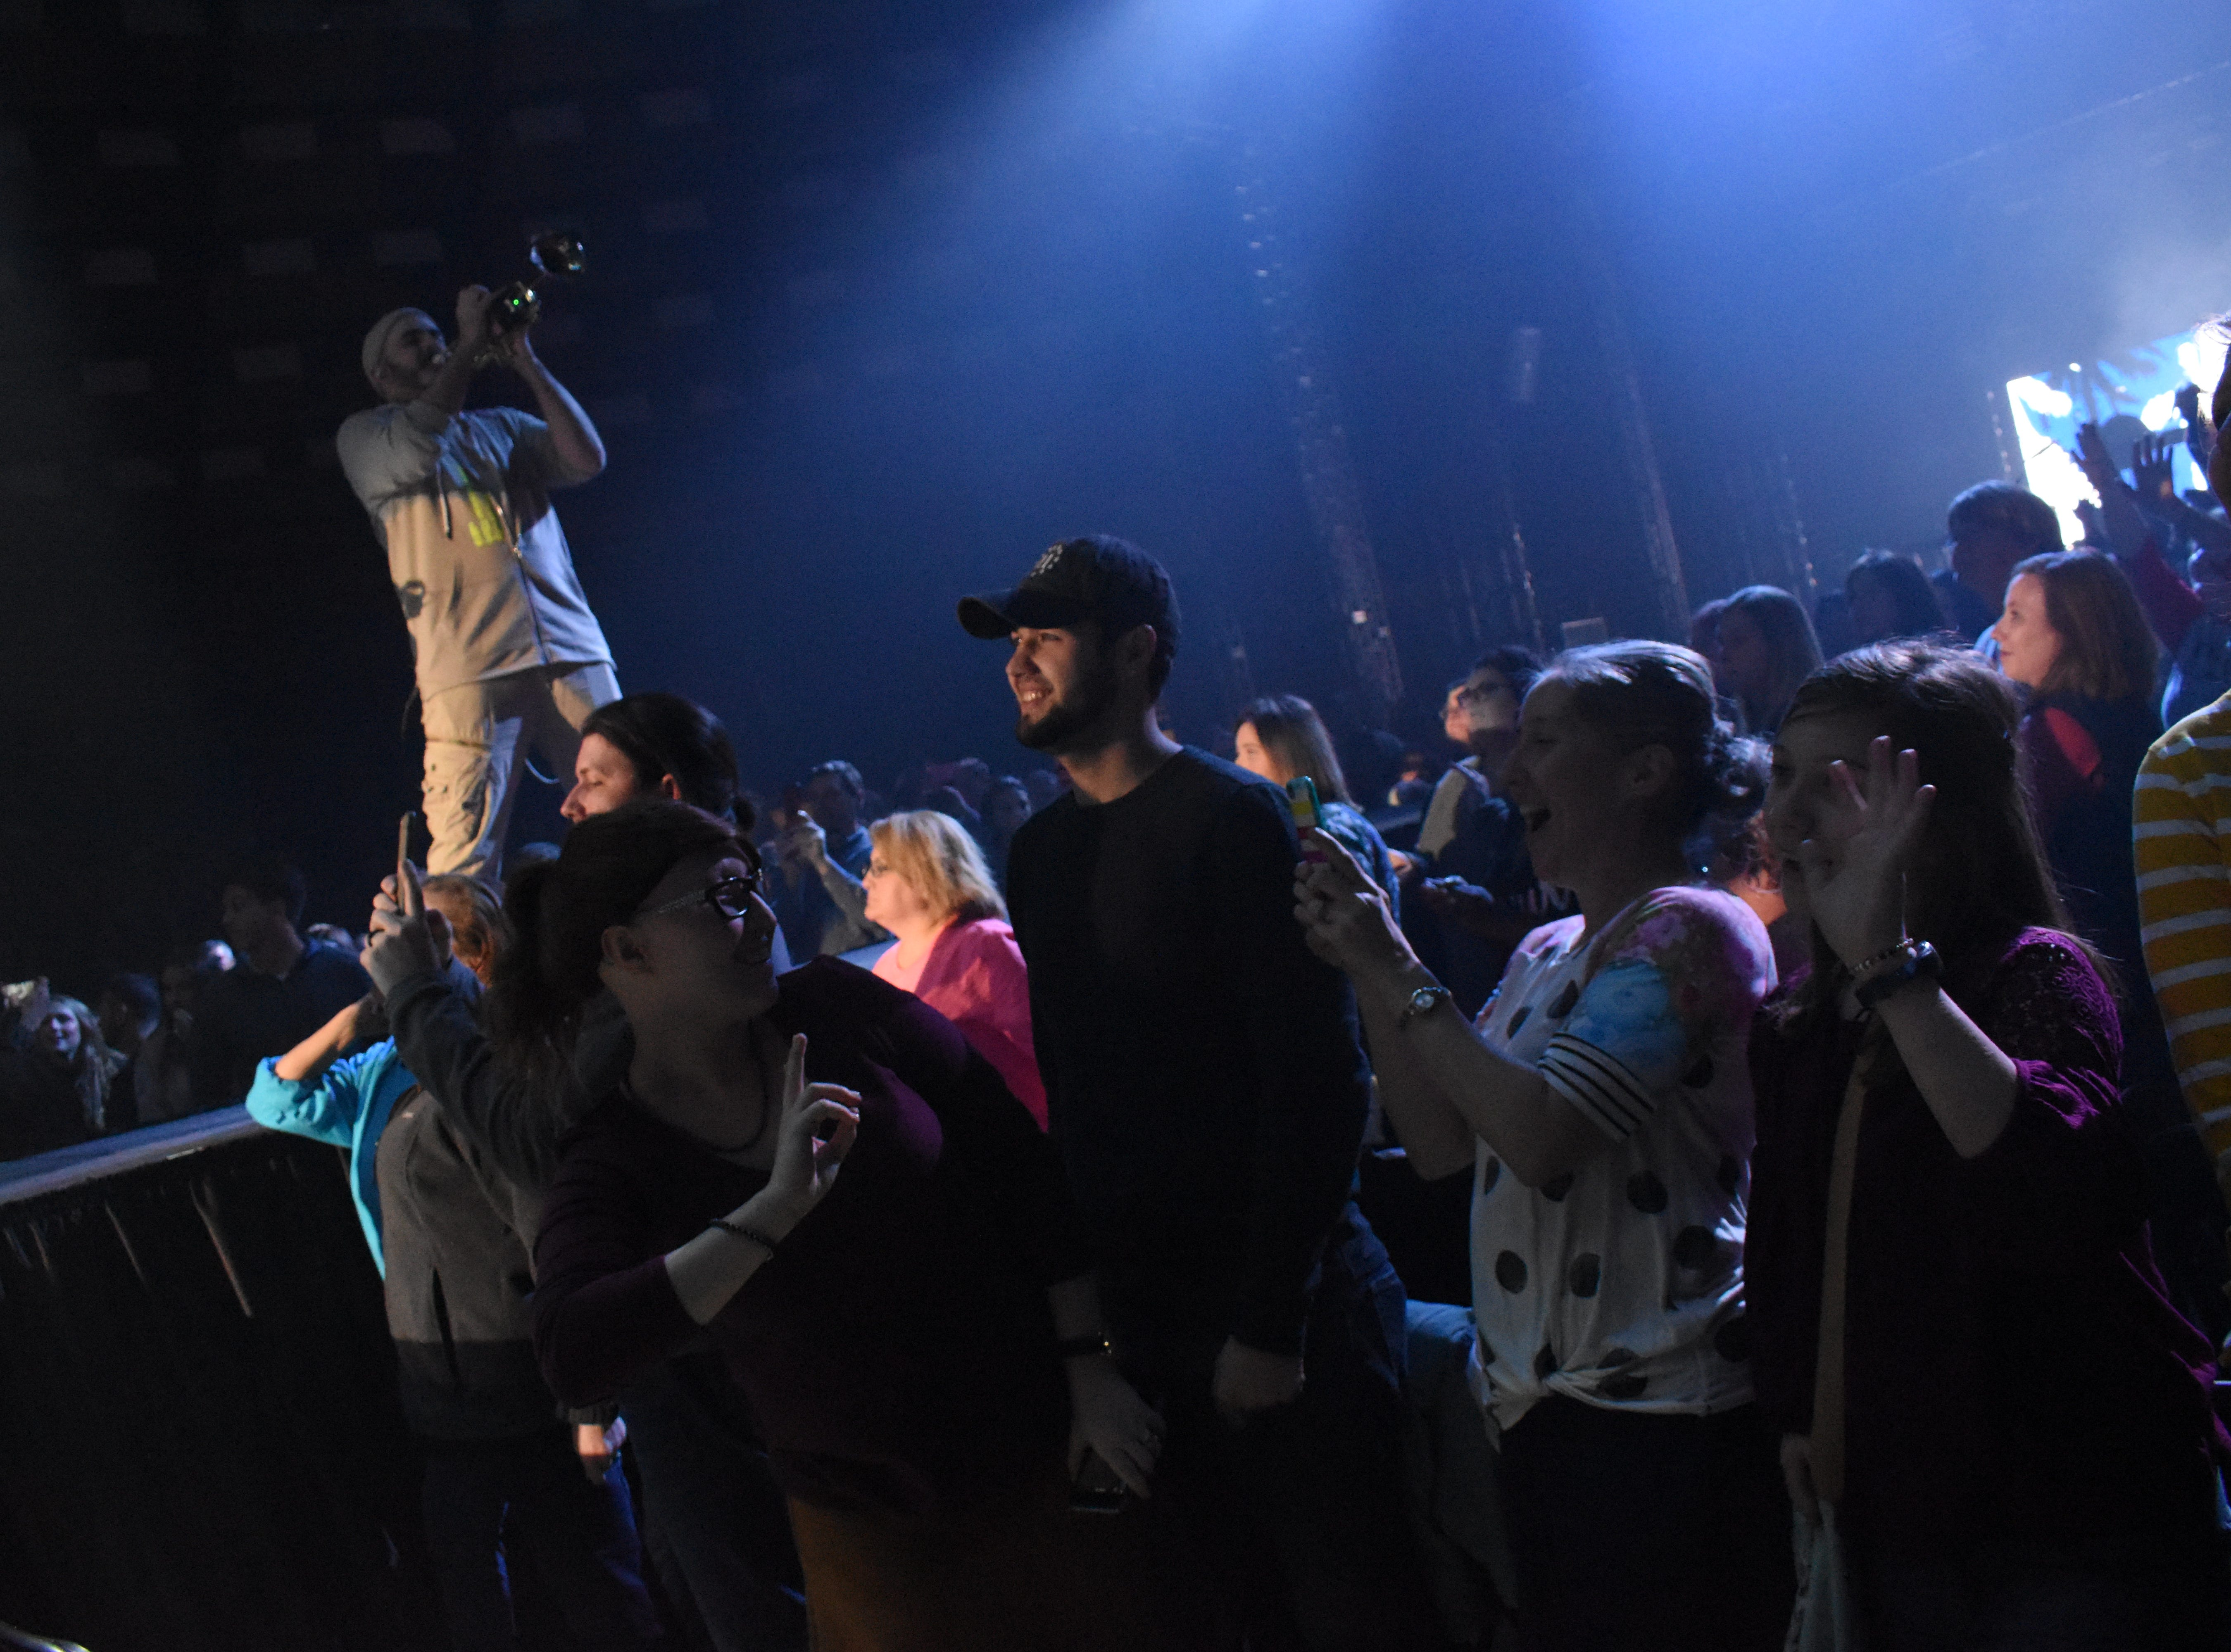 """Grammy-award winner and Christian hip-hop musician TobyMac launch his 2019 """"Hits Deep"""" tour Tuesday night at the Rapides Parish Coliseum. Alexandria is the launch point of the 34-city tour. Other performers who appeared with TobyMac included Jeremy Camp, Jordan Feliz, Ryan Stevenson, We Are Messengers and Aaron Cole. Local dancers from Vicki's Dance Centers danced back up with TobyMac. Out of the 34-ciby tour, This is the only local dance studio to dance on stage with TobyMac."""